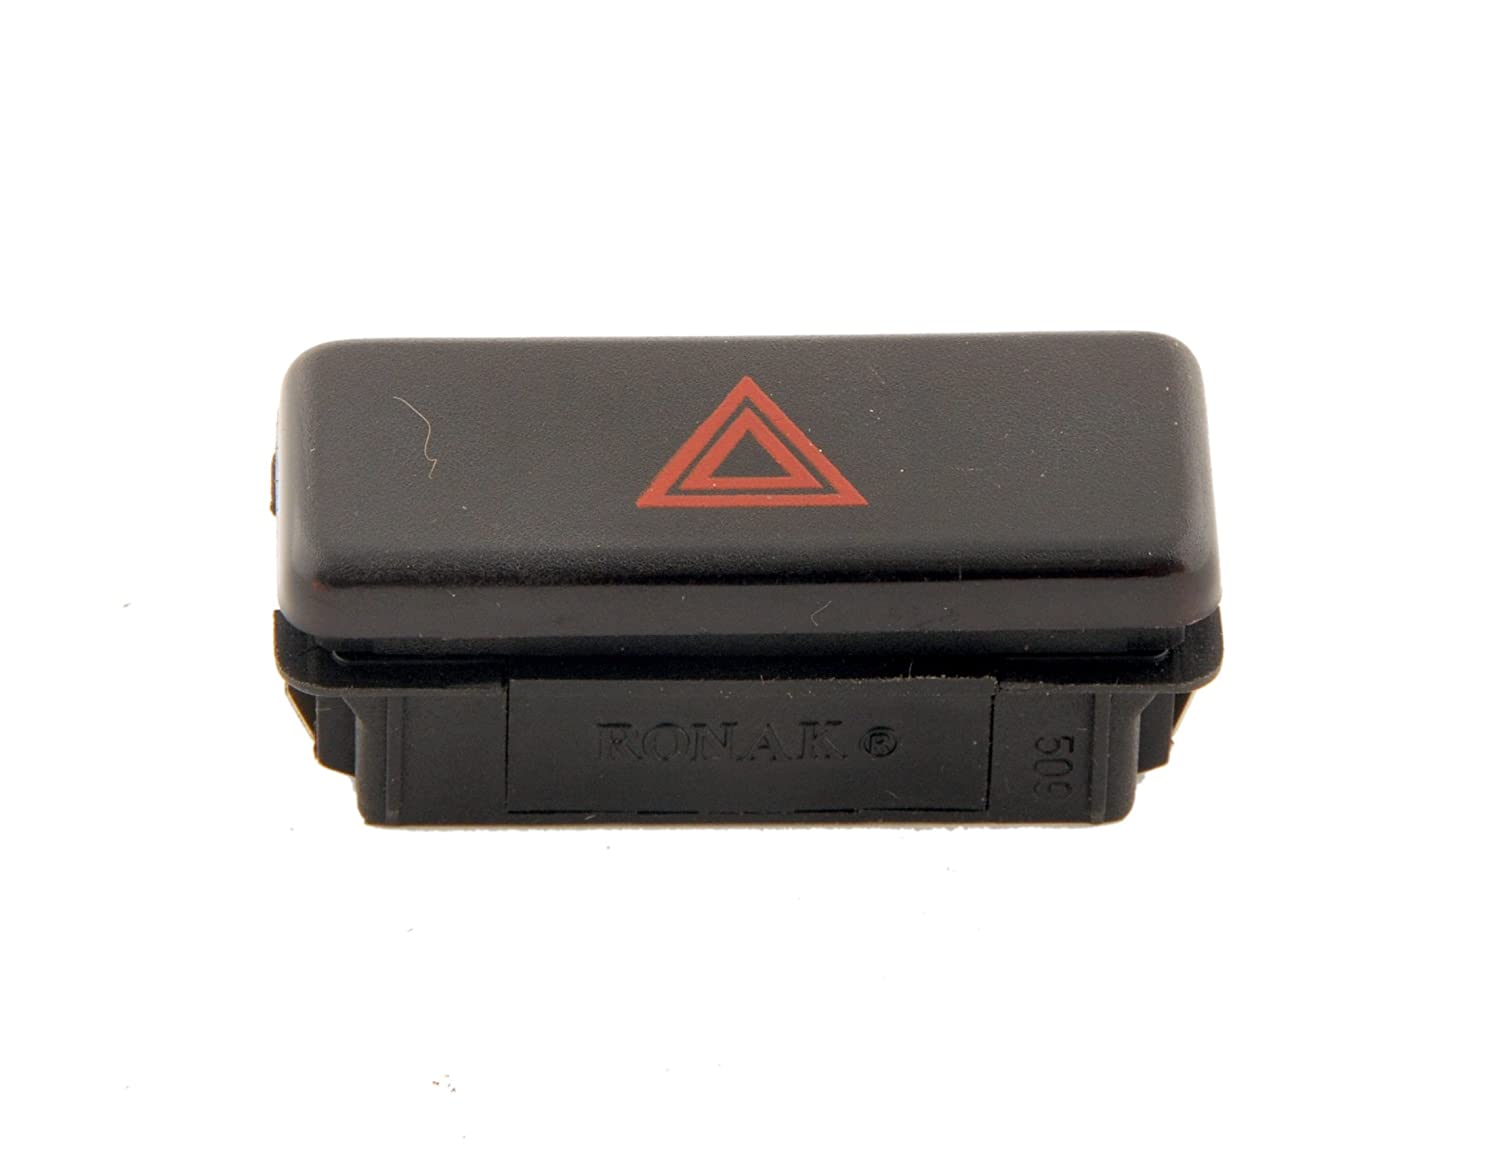 MTC 1114//61-31-1-374-220 Hazard Flasher Switch 61-31-1-374-220 MTC 1114 for BMW Models